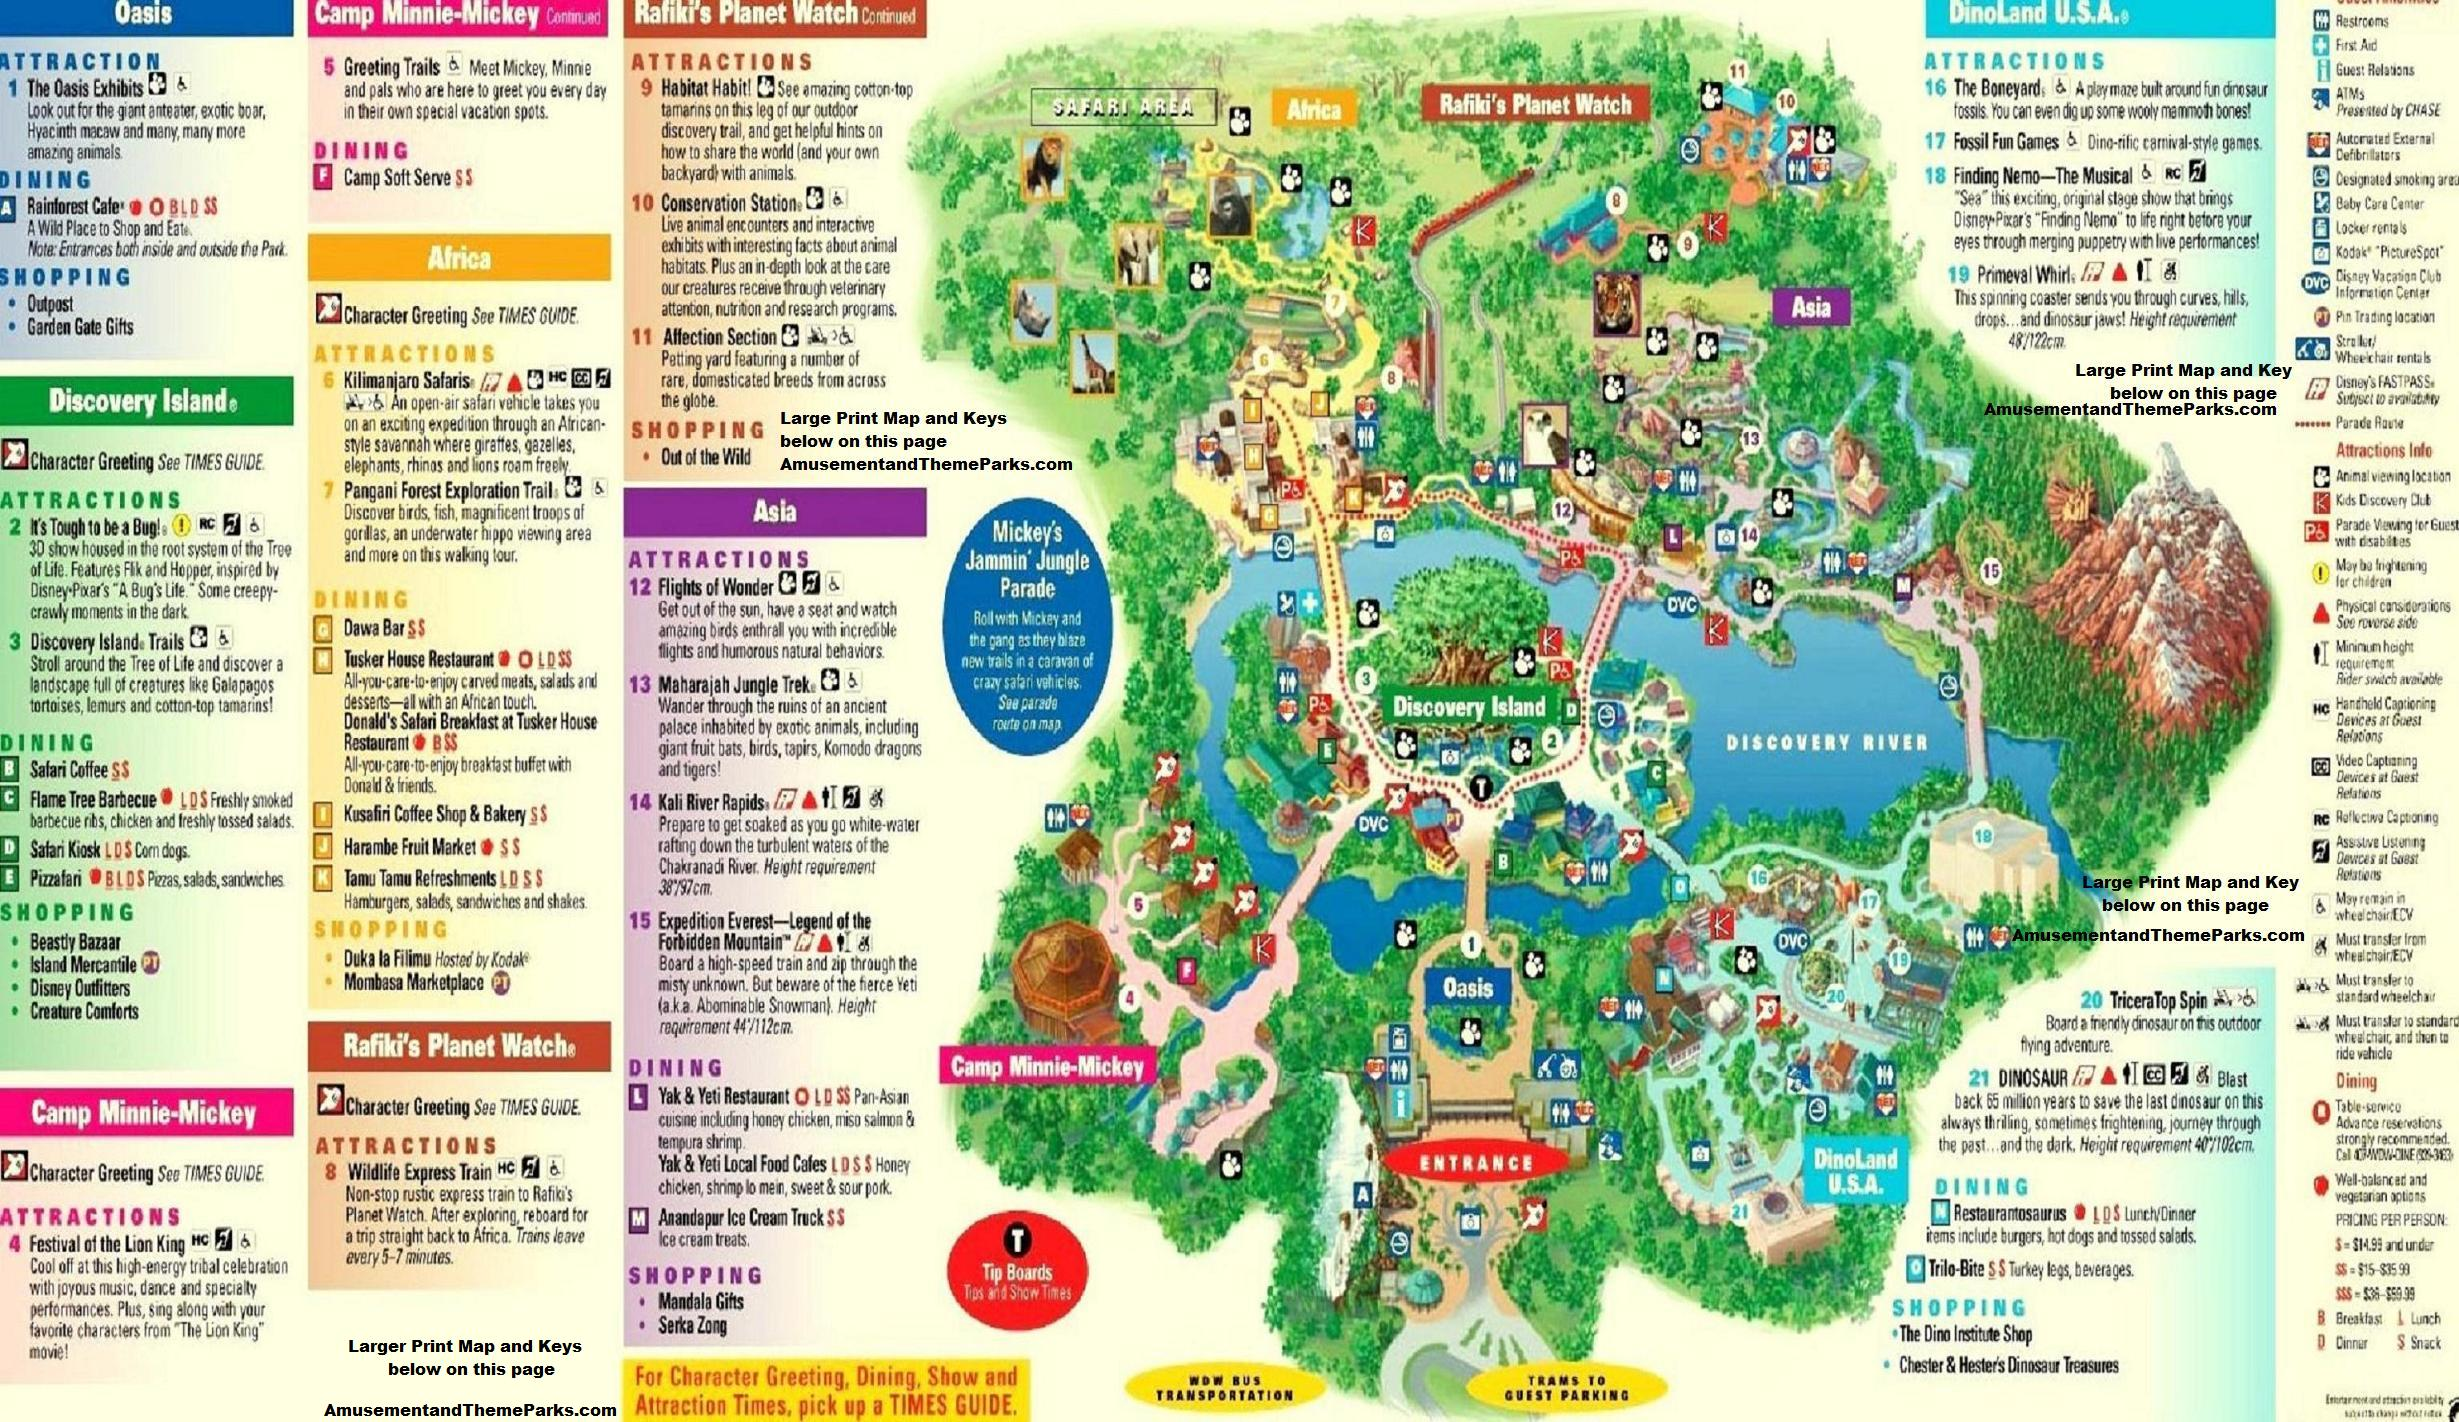 5 Useful Things You Can Learn from Disney Park Maps ... on map of last night, map of restrepo, map of first landing, map of sea world san antonio, map of butler chain of lakes, map of arthur, map of universal studios orlando, map of nickelodeon suites resort, map of tammy, map of serenity, map of downtown disney, map of wizarding world of harry potter, map of espn wide world of sports complex, map of epcot, map of the kentucky derby, map of disney world, map of blizzard beach, map of disney village, map of typhoon lagoon, map of hollywood studios,